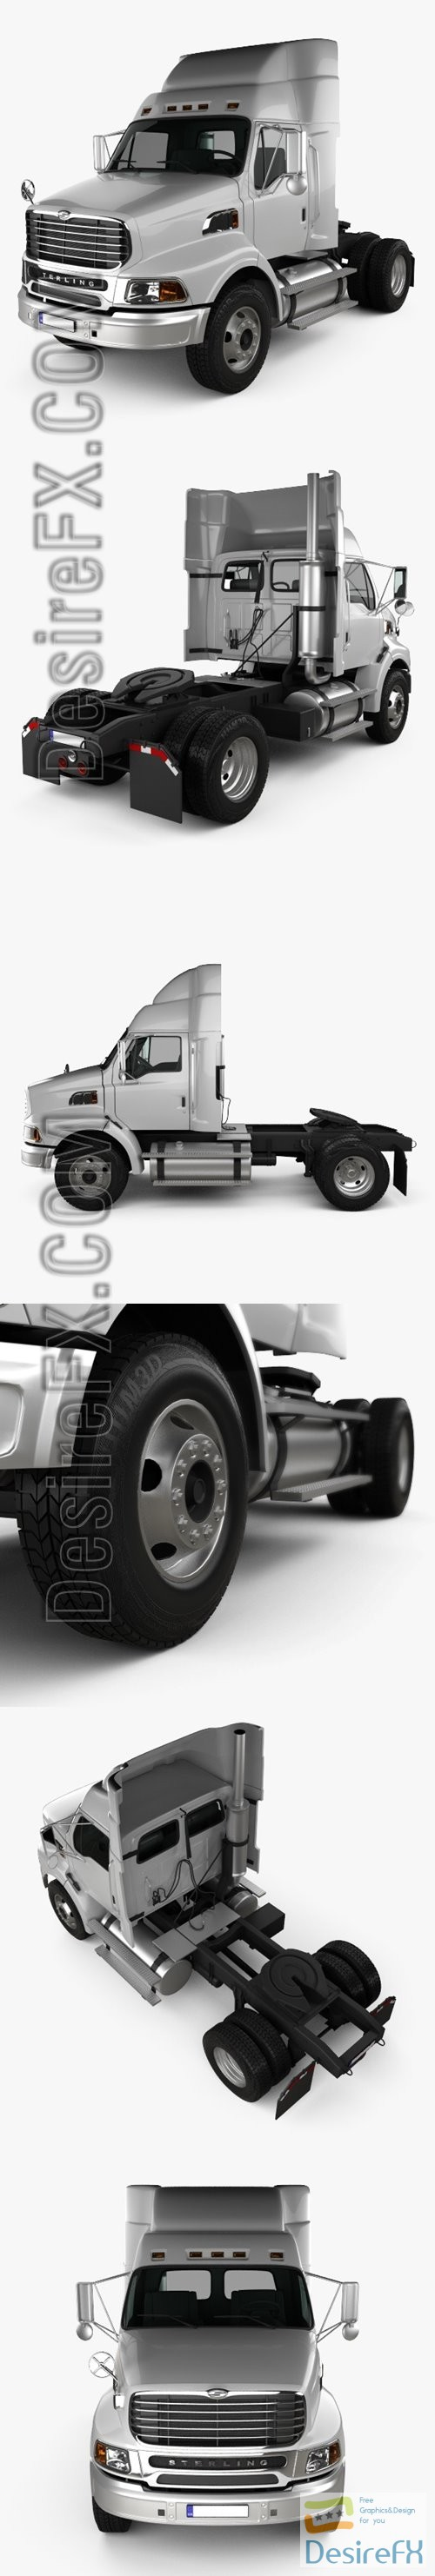 Ford Sterling A9500 Tractor Truck 2006 3D Model